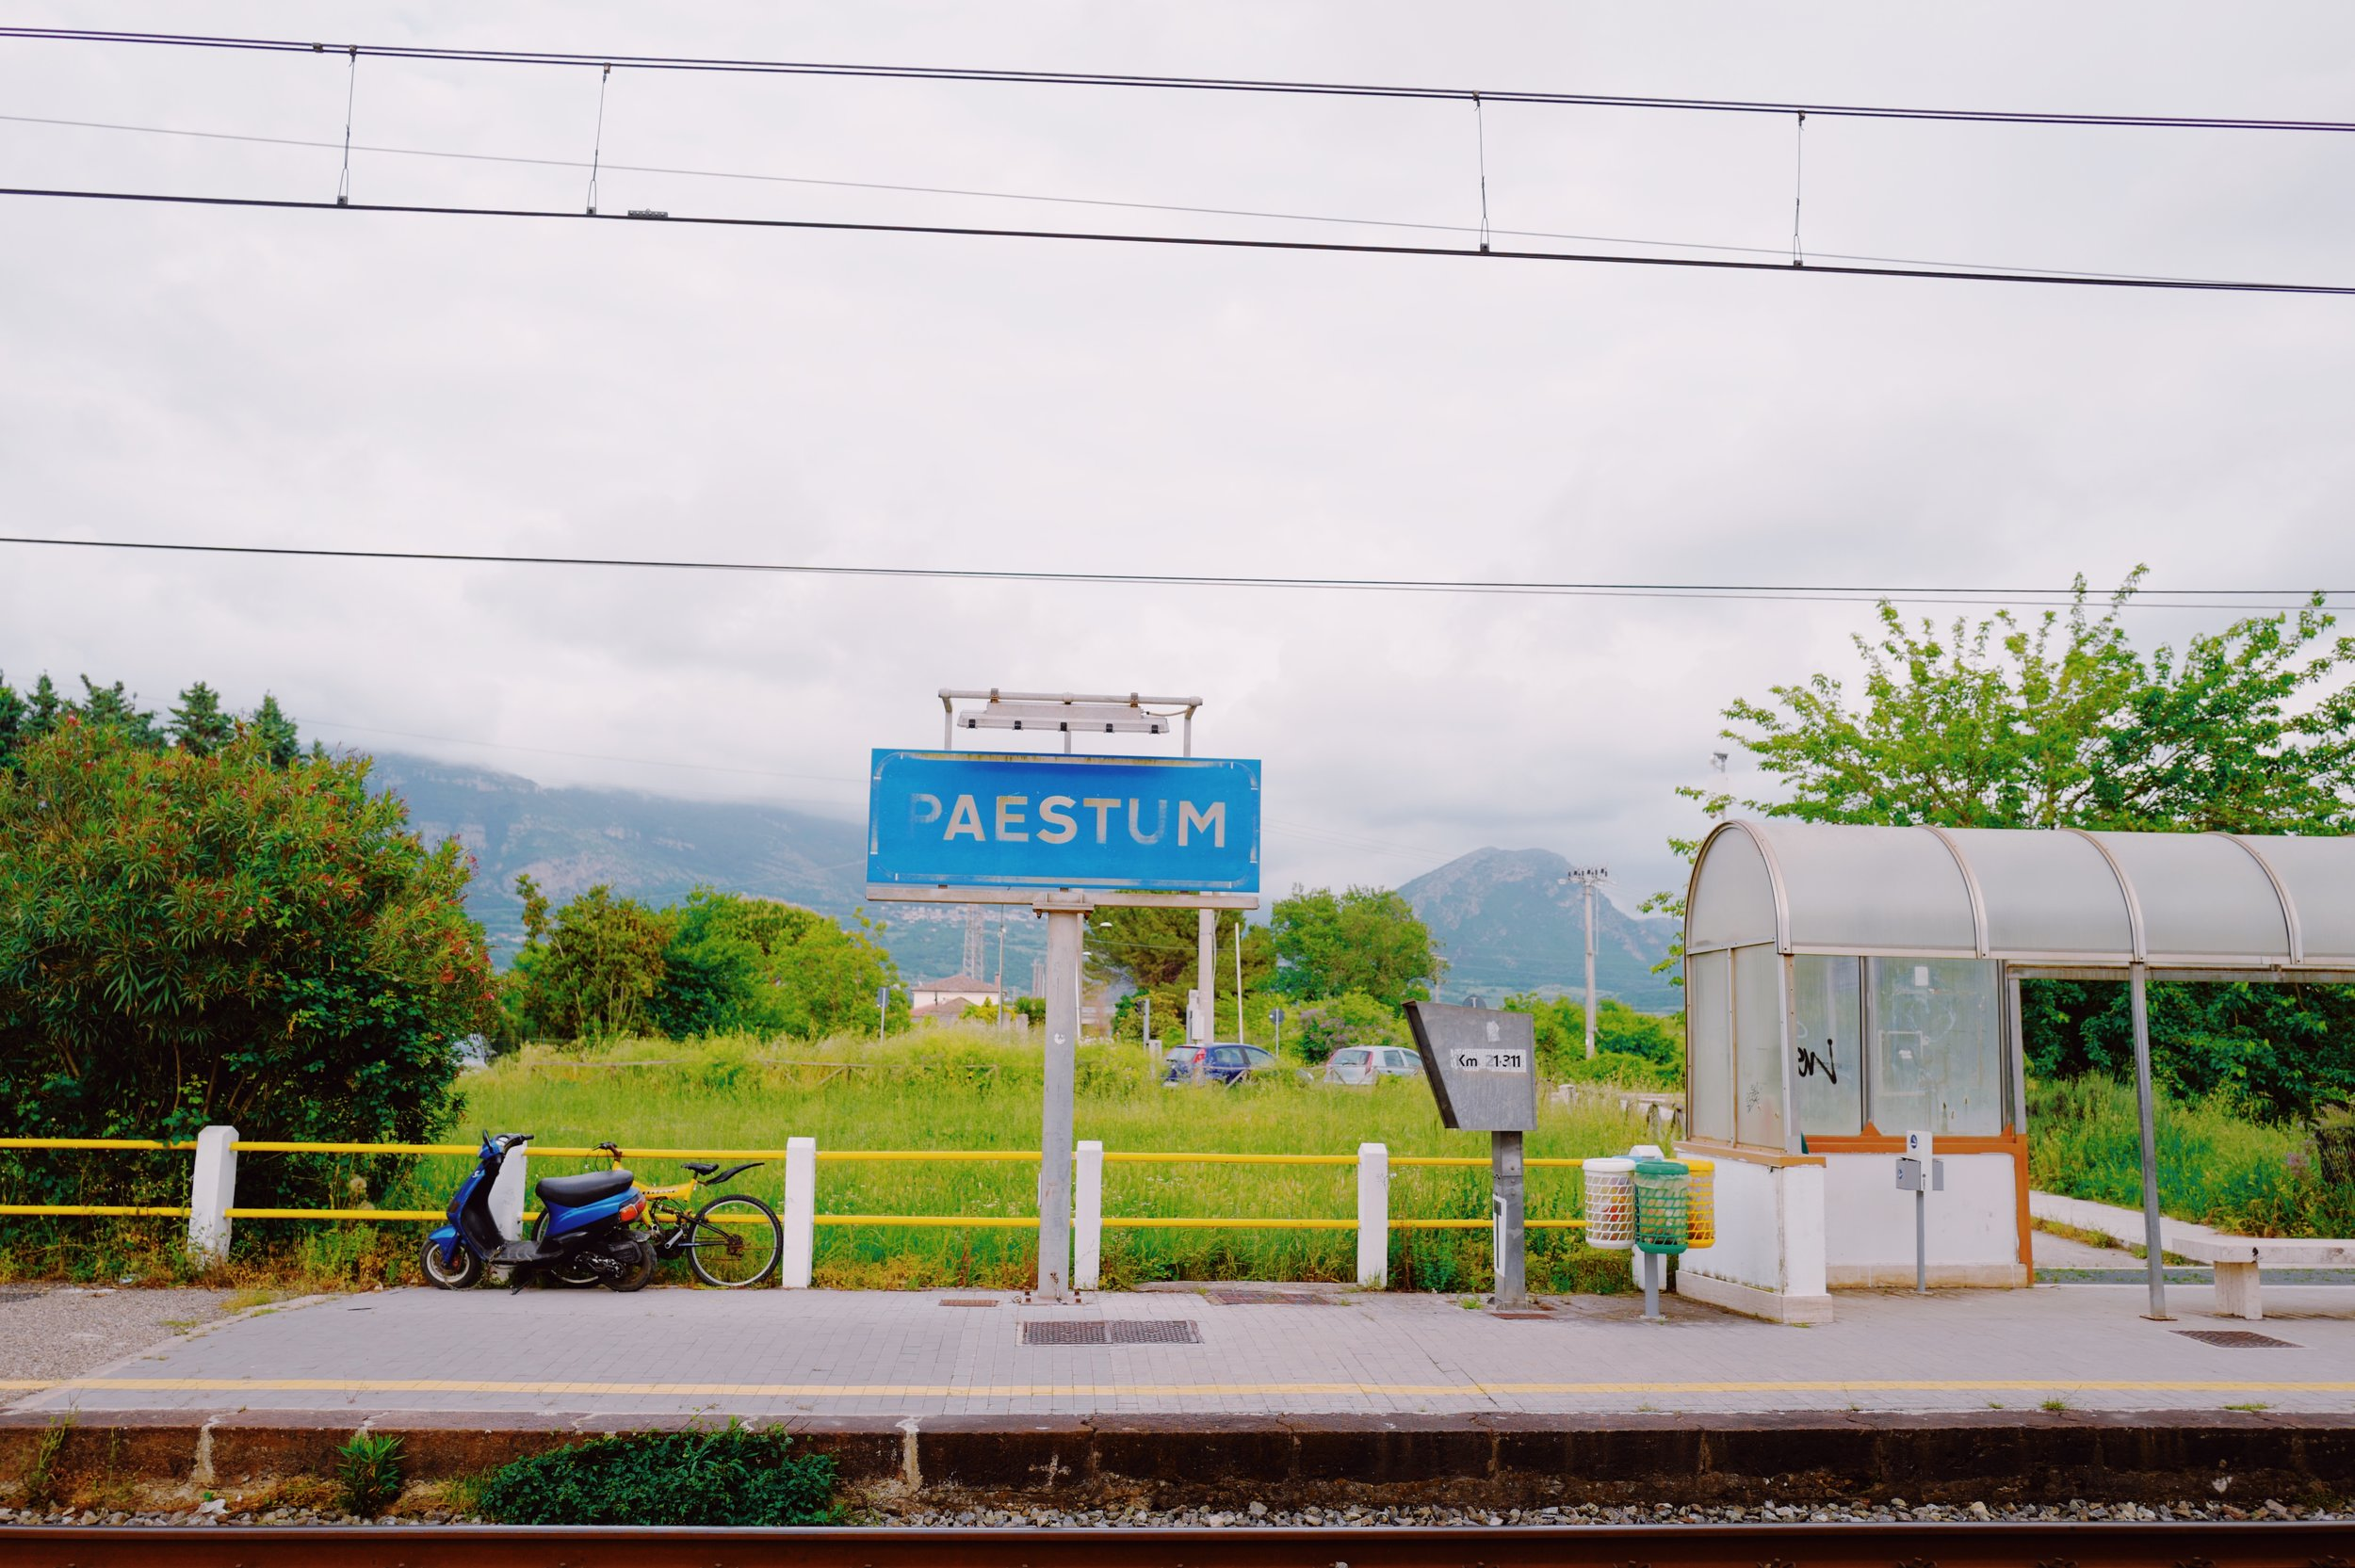 Train station Paestum, get off here! Follow signs to get to the ruins.